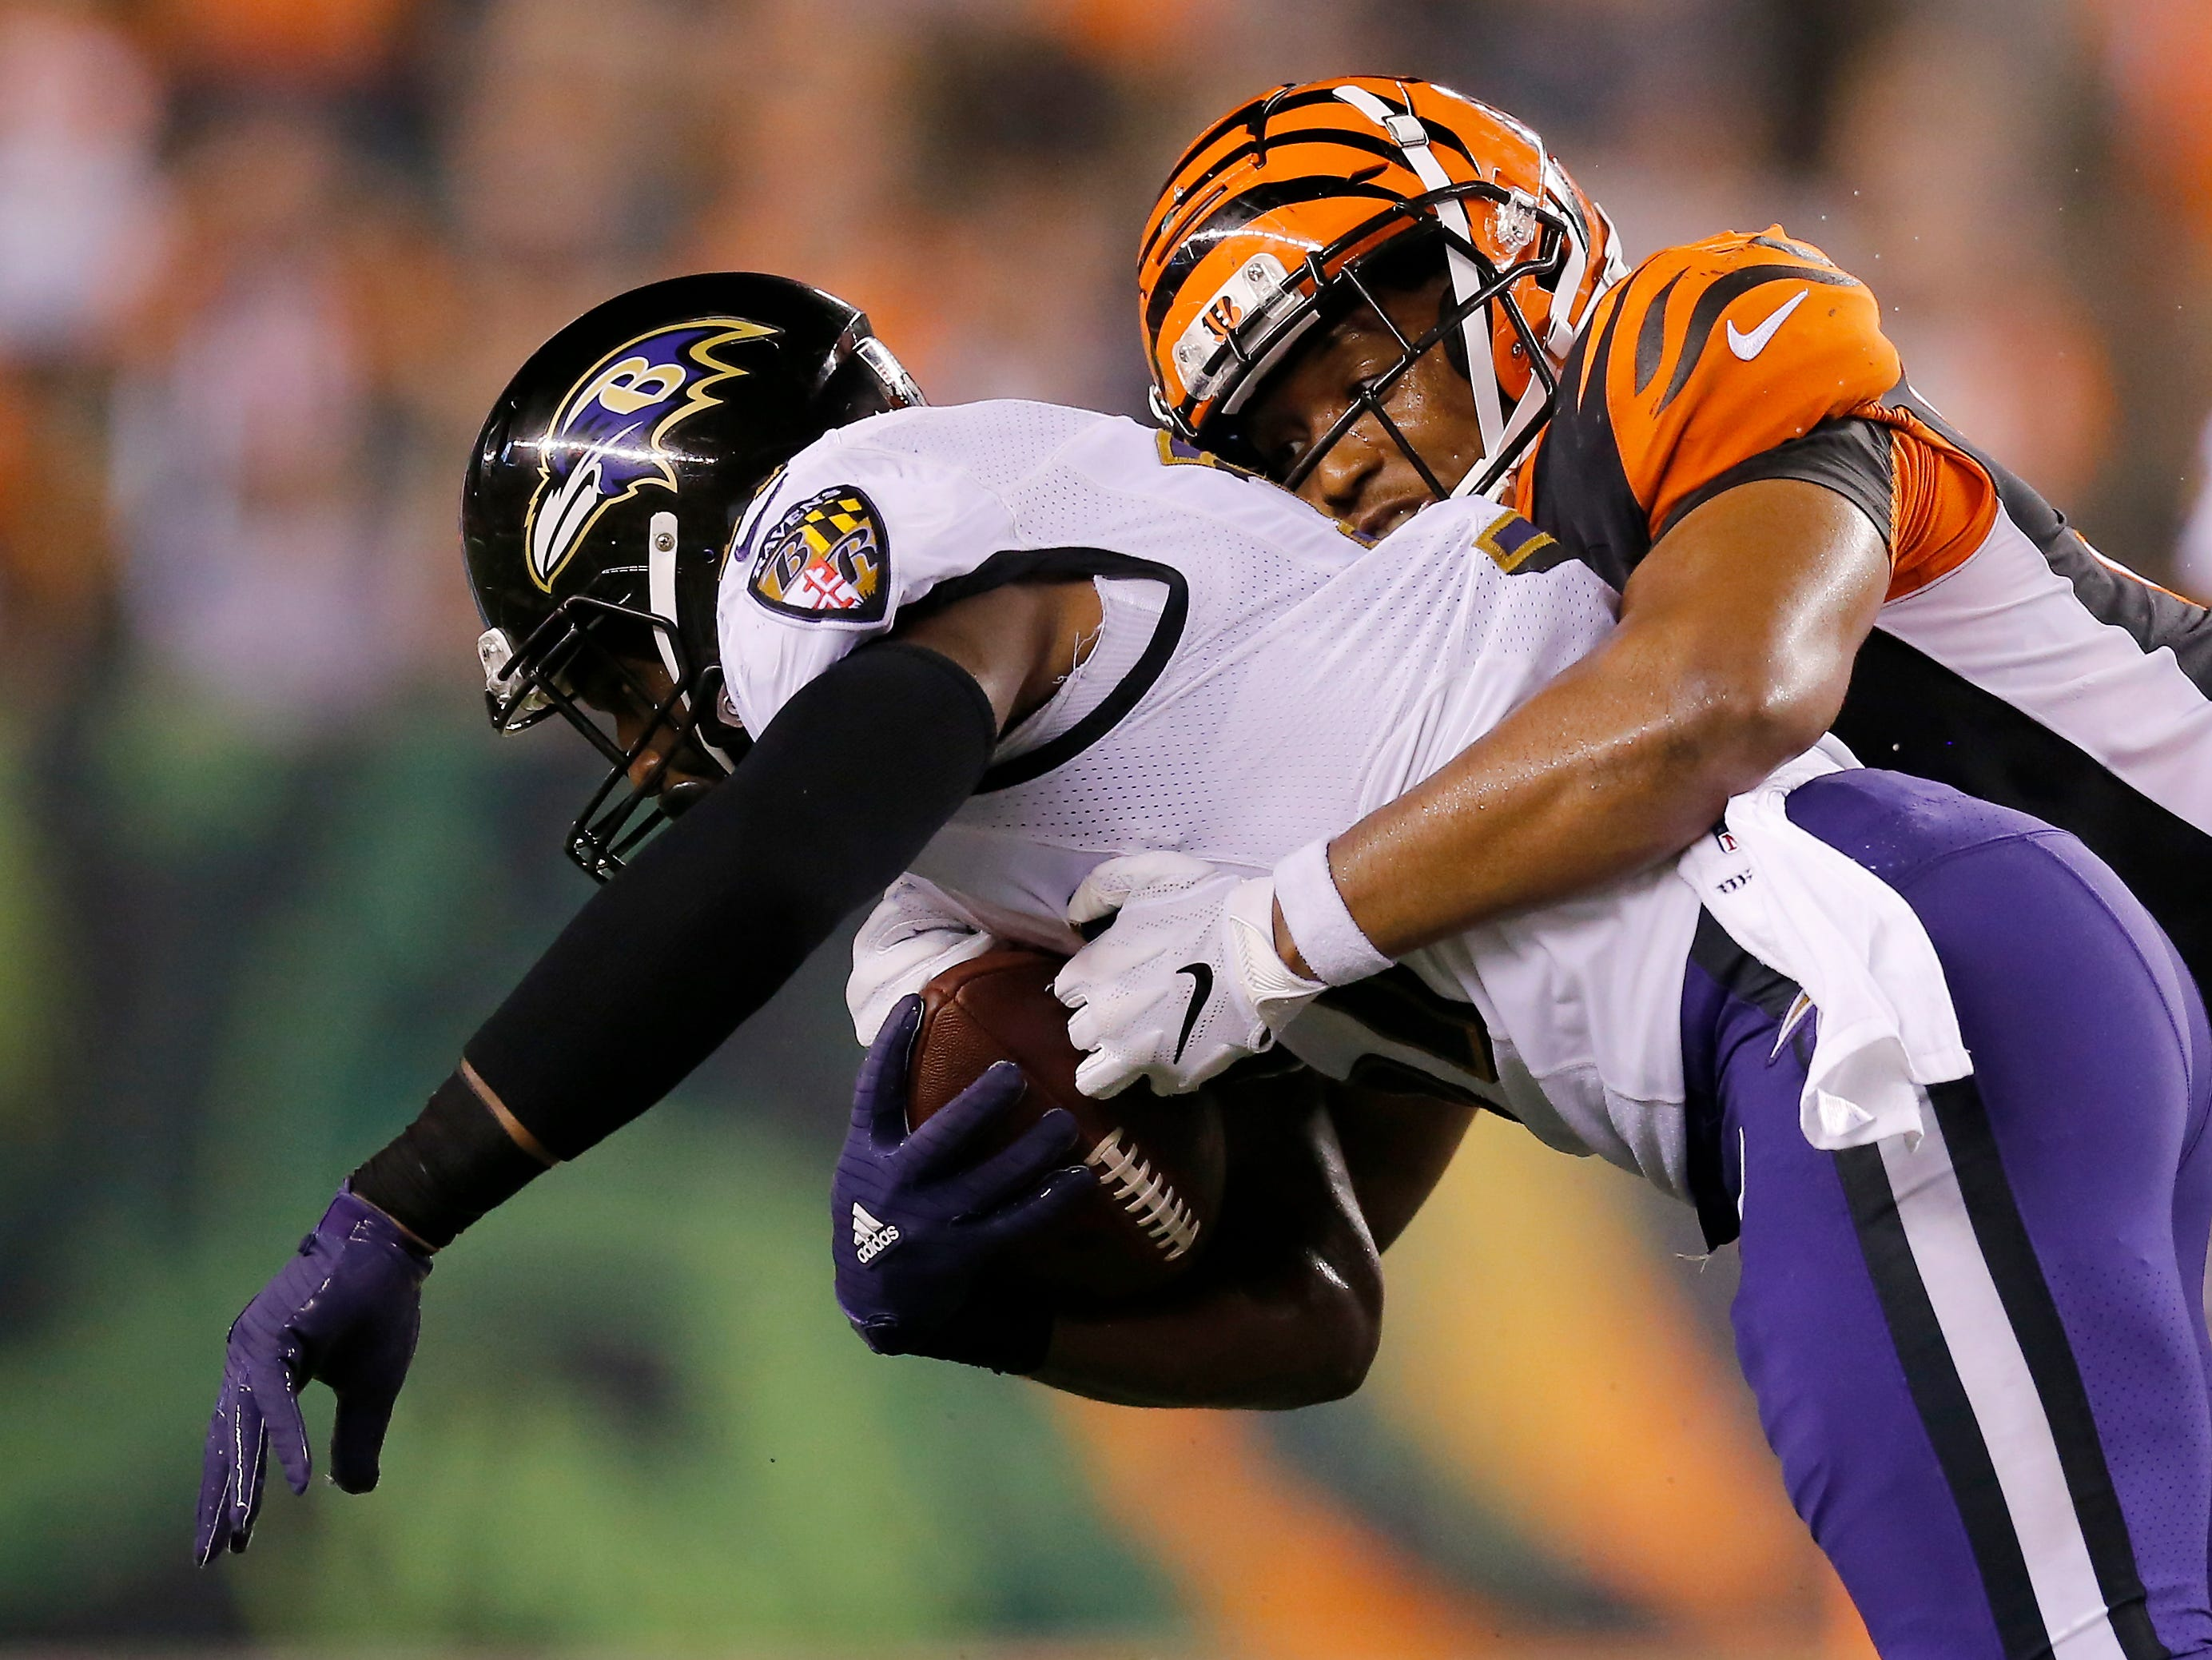 Baltimore Ravens running back Javorius Allen (37) is brought down Cincinnati Bengals linebacker Hardy Nickerson (56) in the fourth quarter of the NFL Week 2 game between the Cincinnati Bengals and the Baltimore Ravens at Paul Brown Stadium in downtown Cincinnati on Thursday, Sept. 13, 2018. The Bengals improved to 2-0 on the season with a 34-23 win over the Ravens.